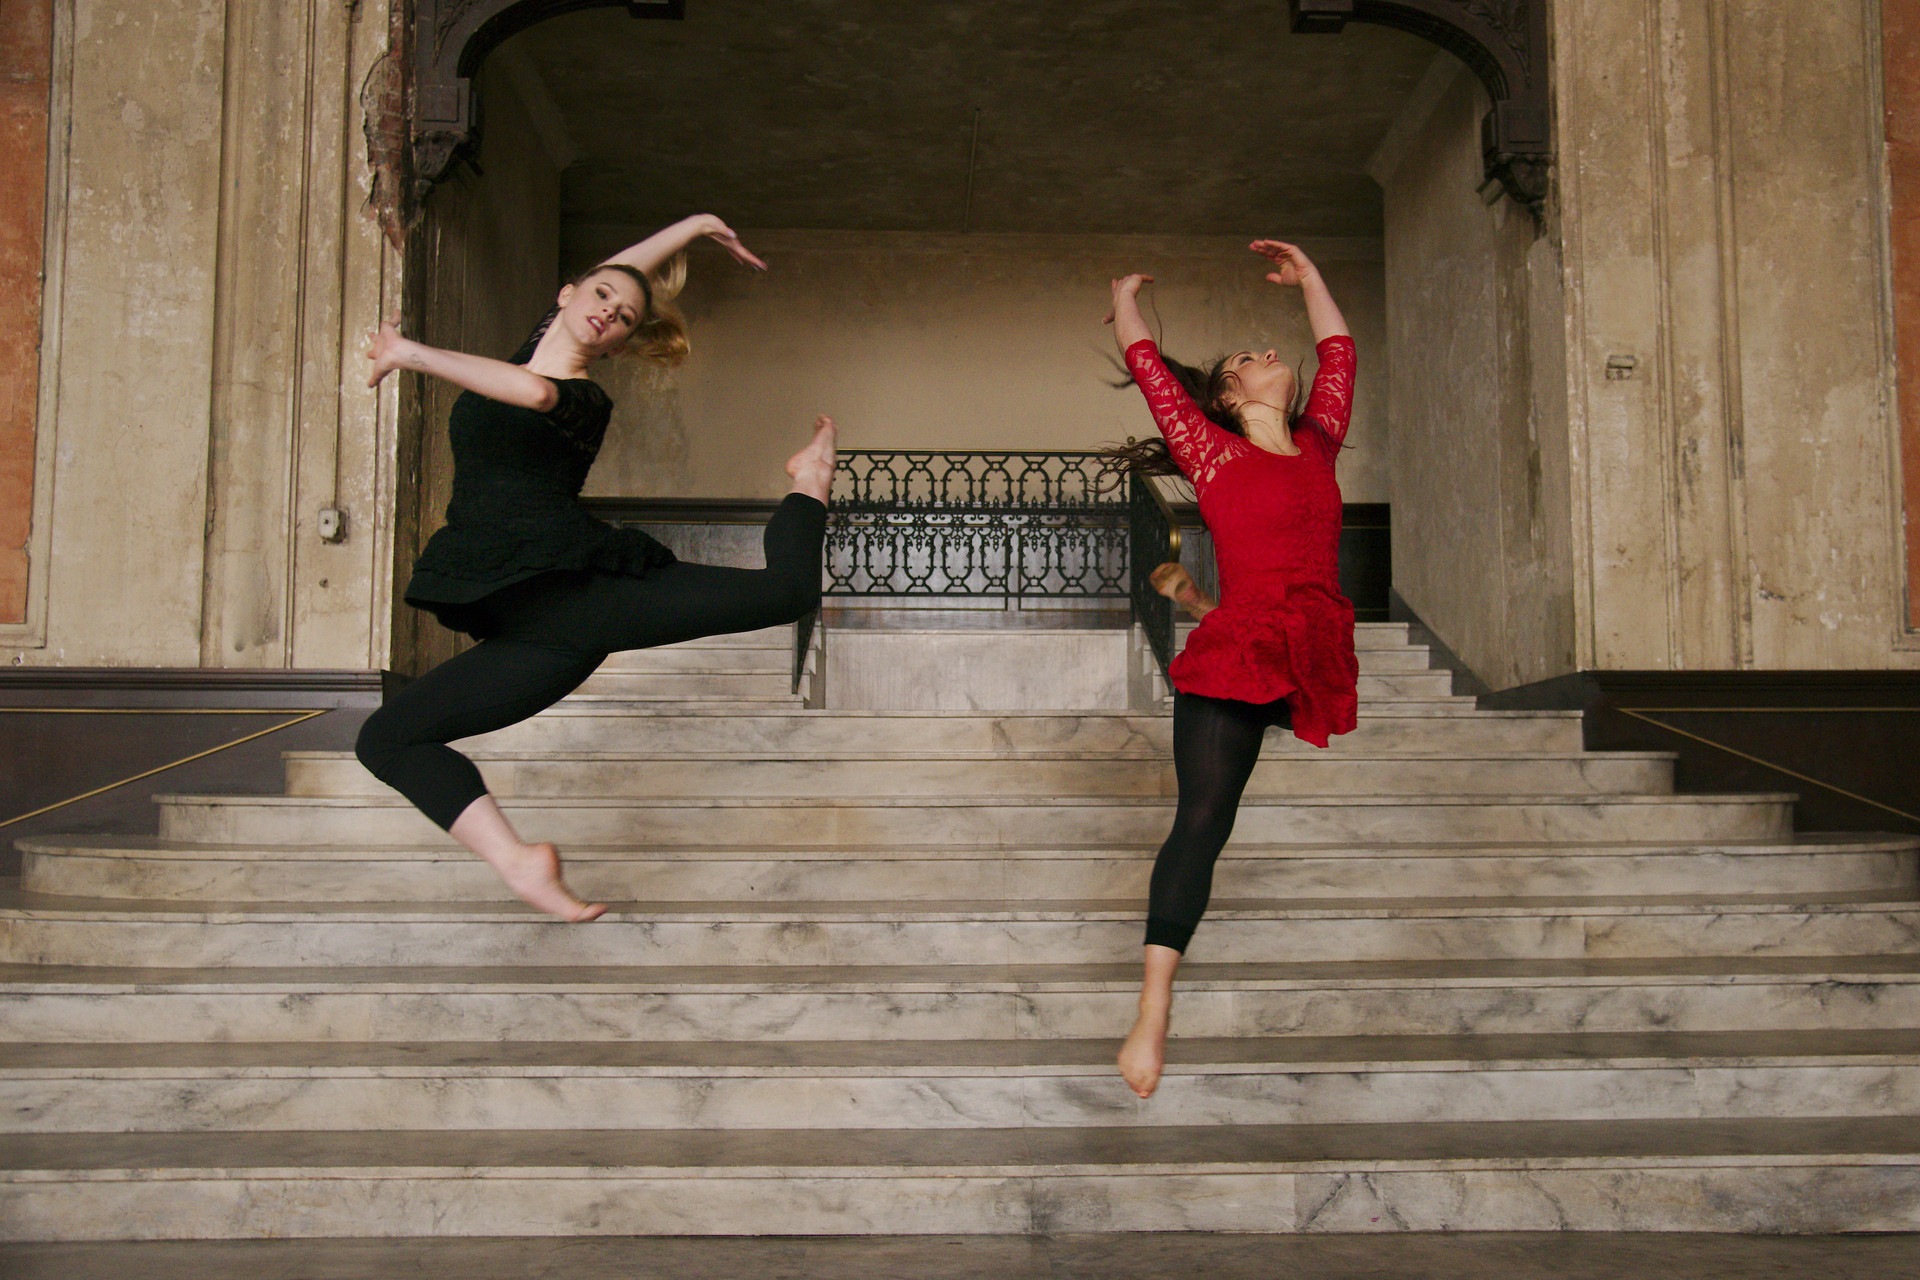 Margot Hodenfield and Fredrika Keefer of Alayo Dance Company by Andy Mogg